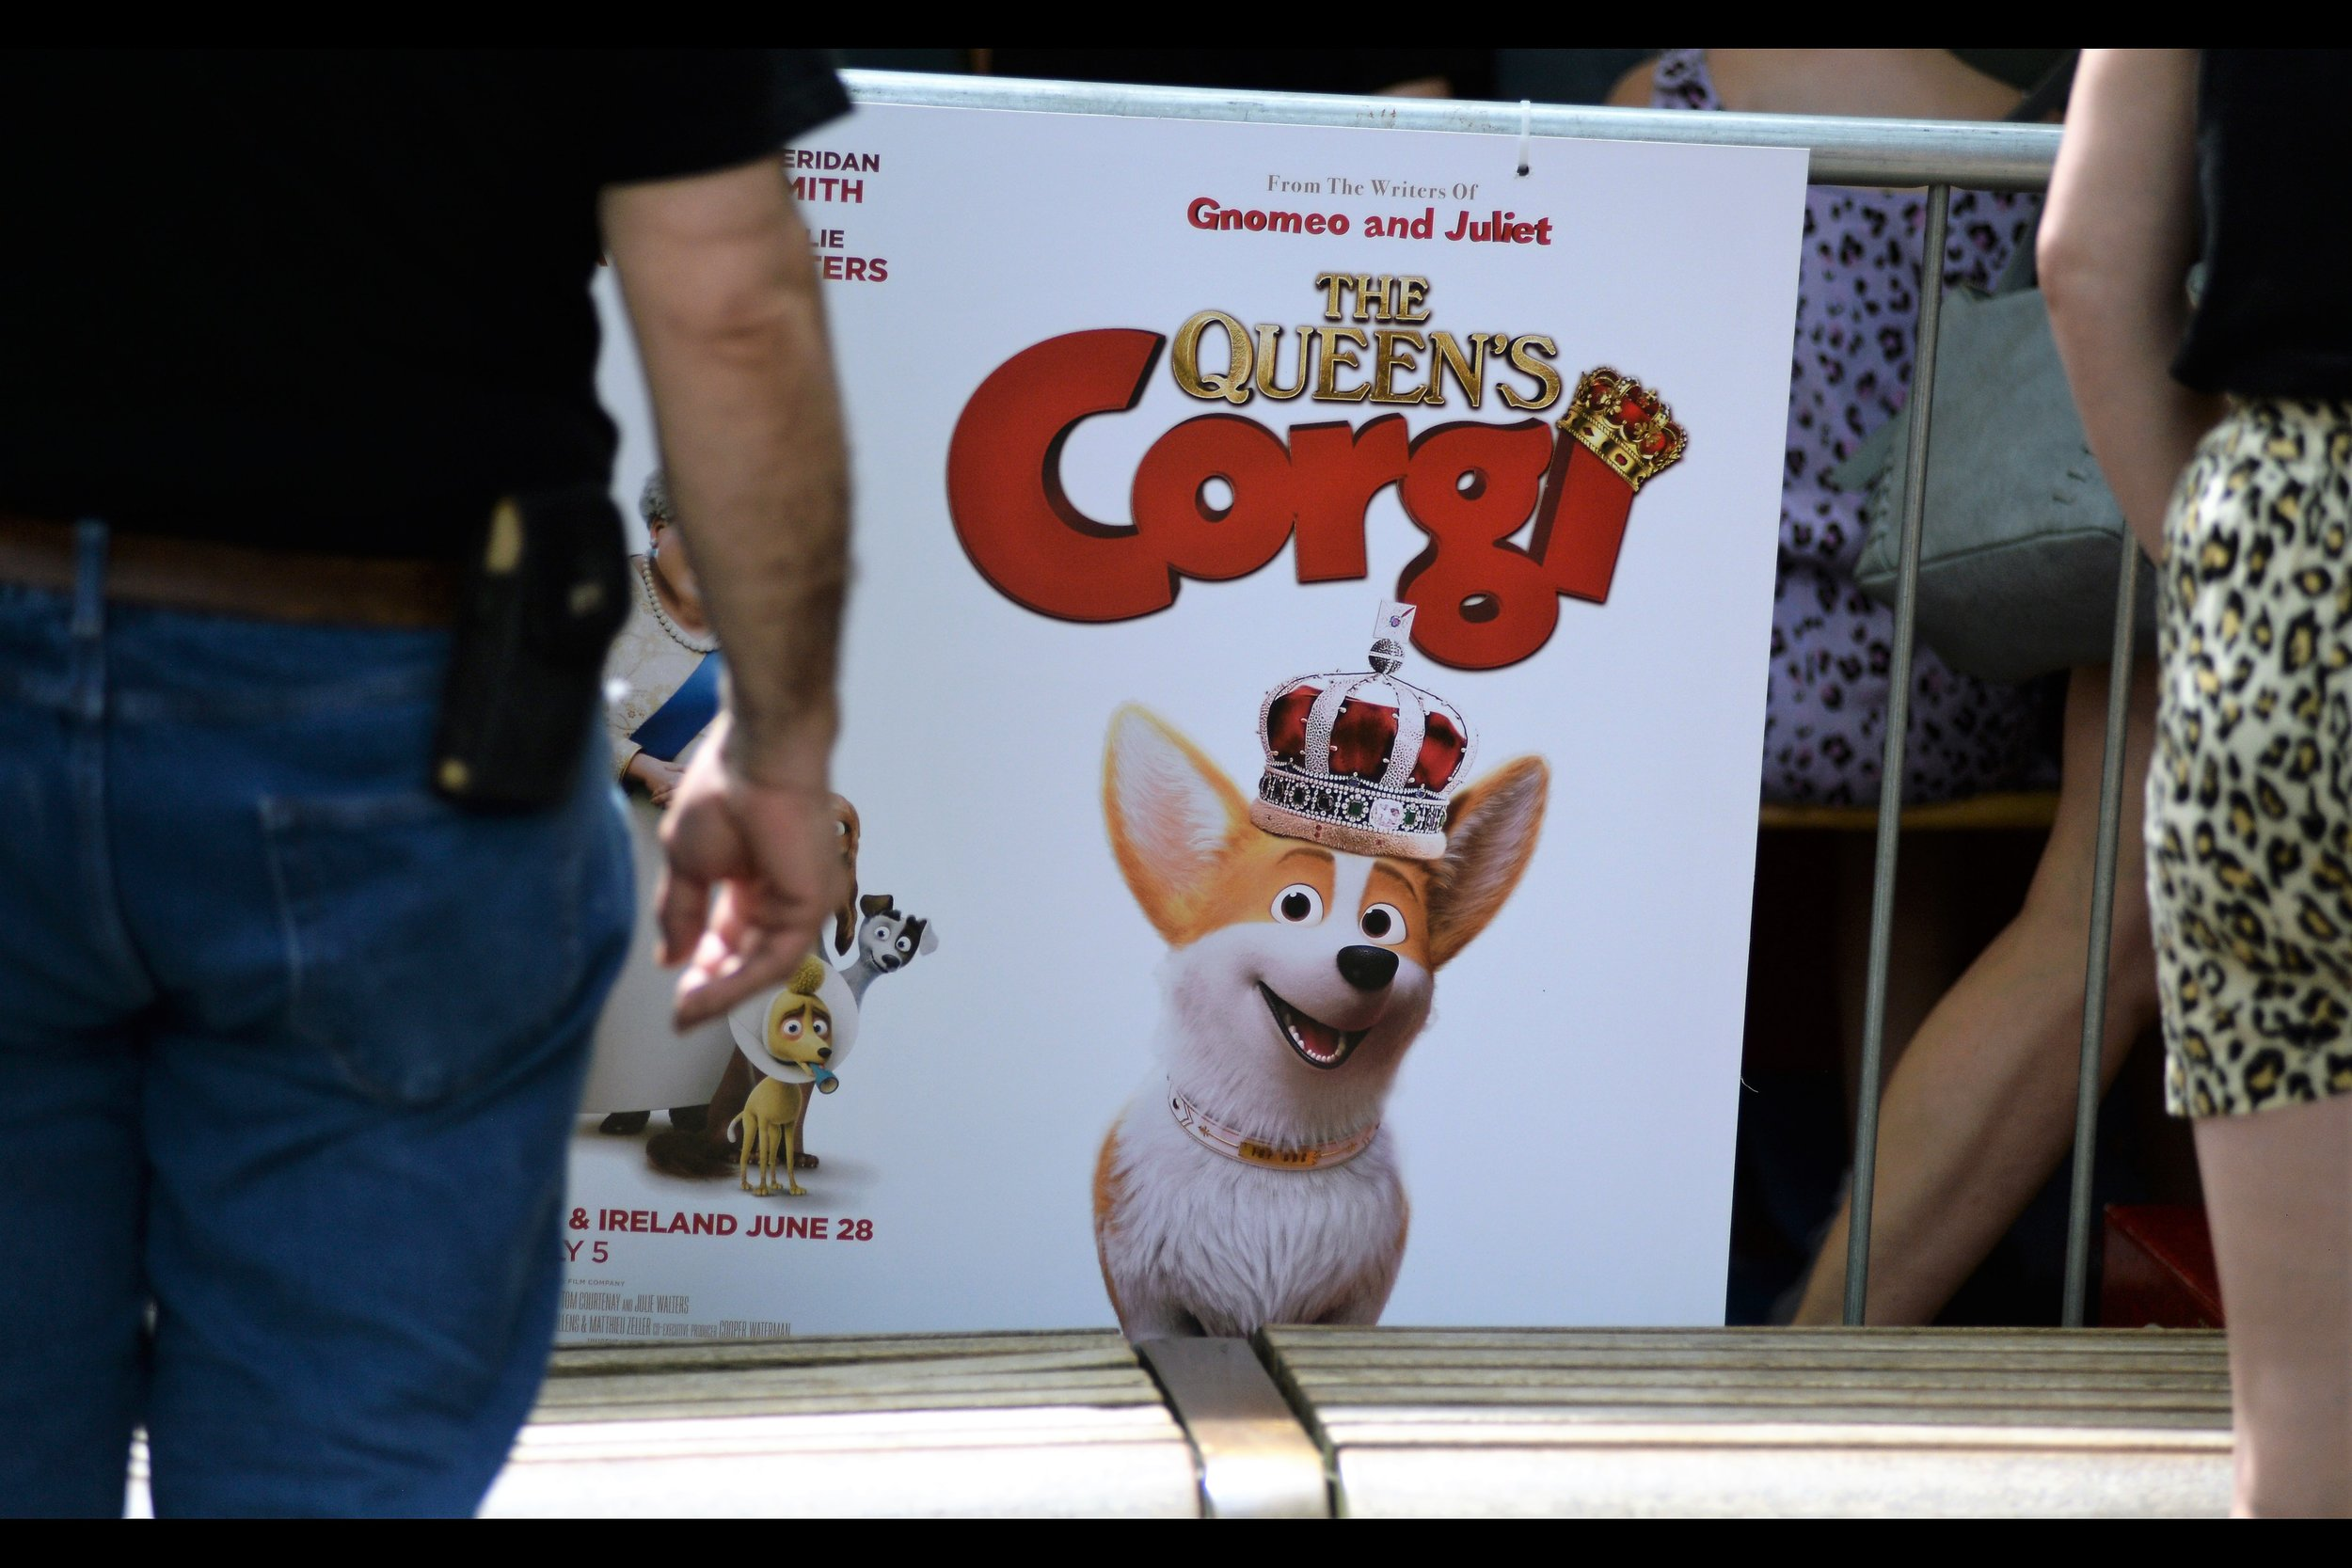 In the movie, the voice of the Queen's Corgi is provided by somebody who didn't feel like attending this premiere, so they didn't. But I don't mind telling you that autograph dealers who showed up at this event were disappointed. They were DISAPPOINTED, do you hear??